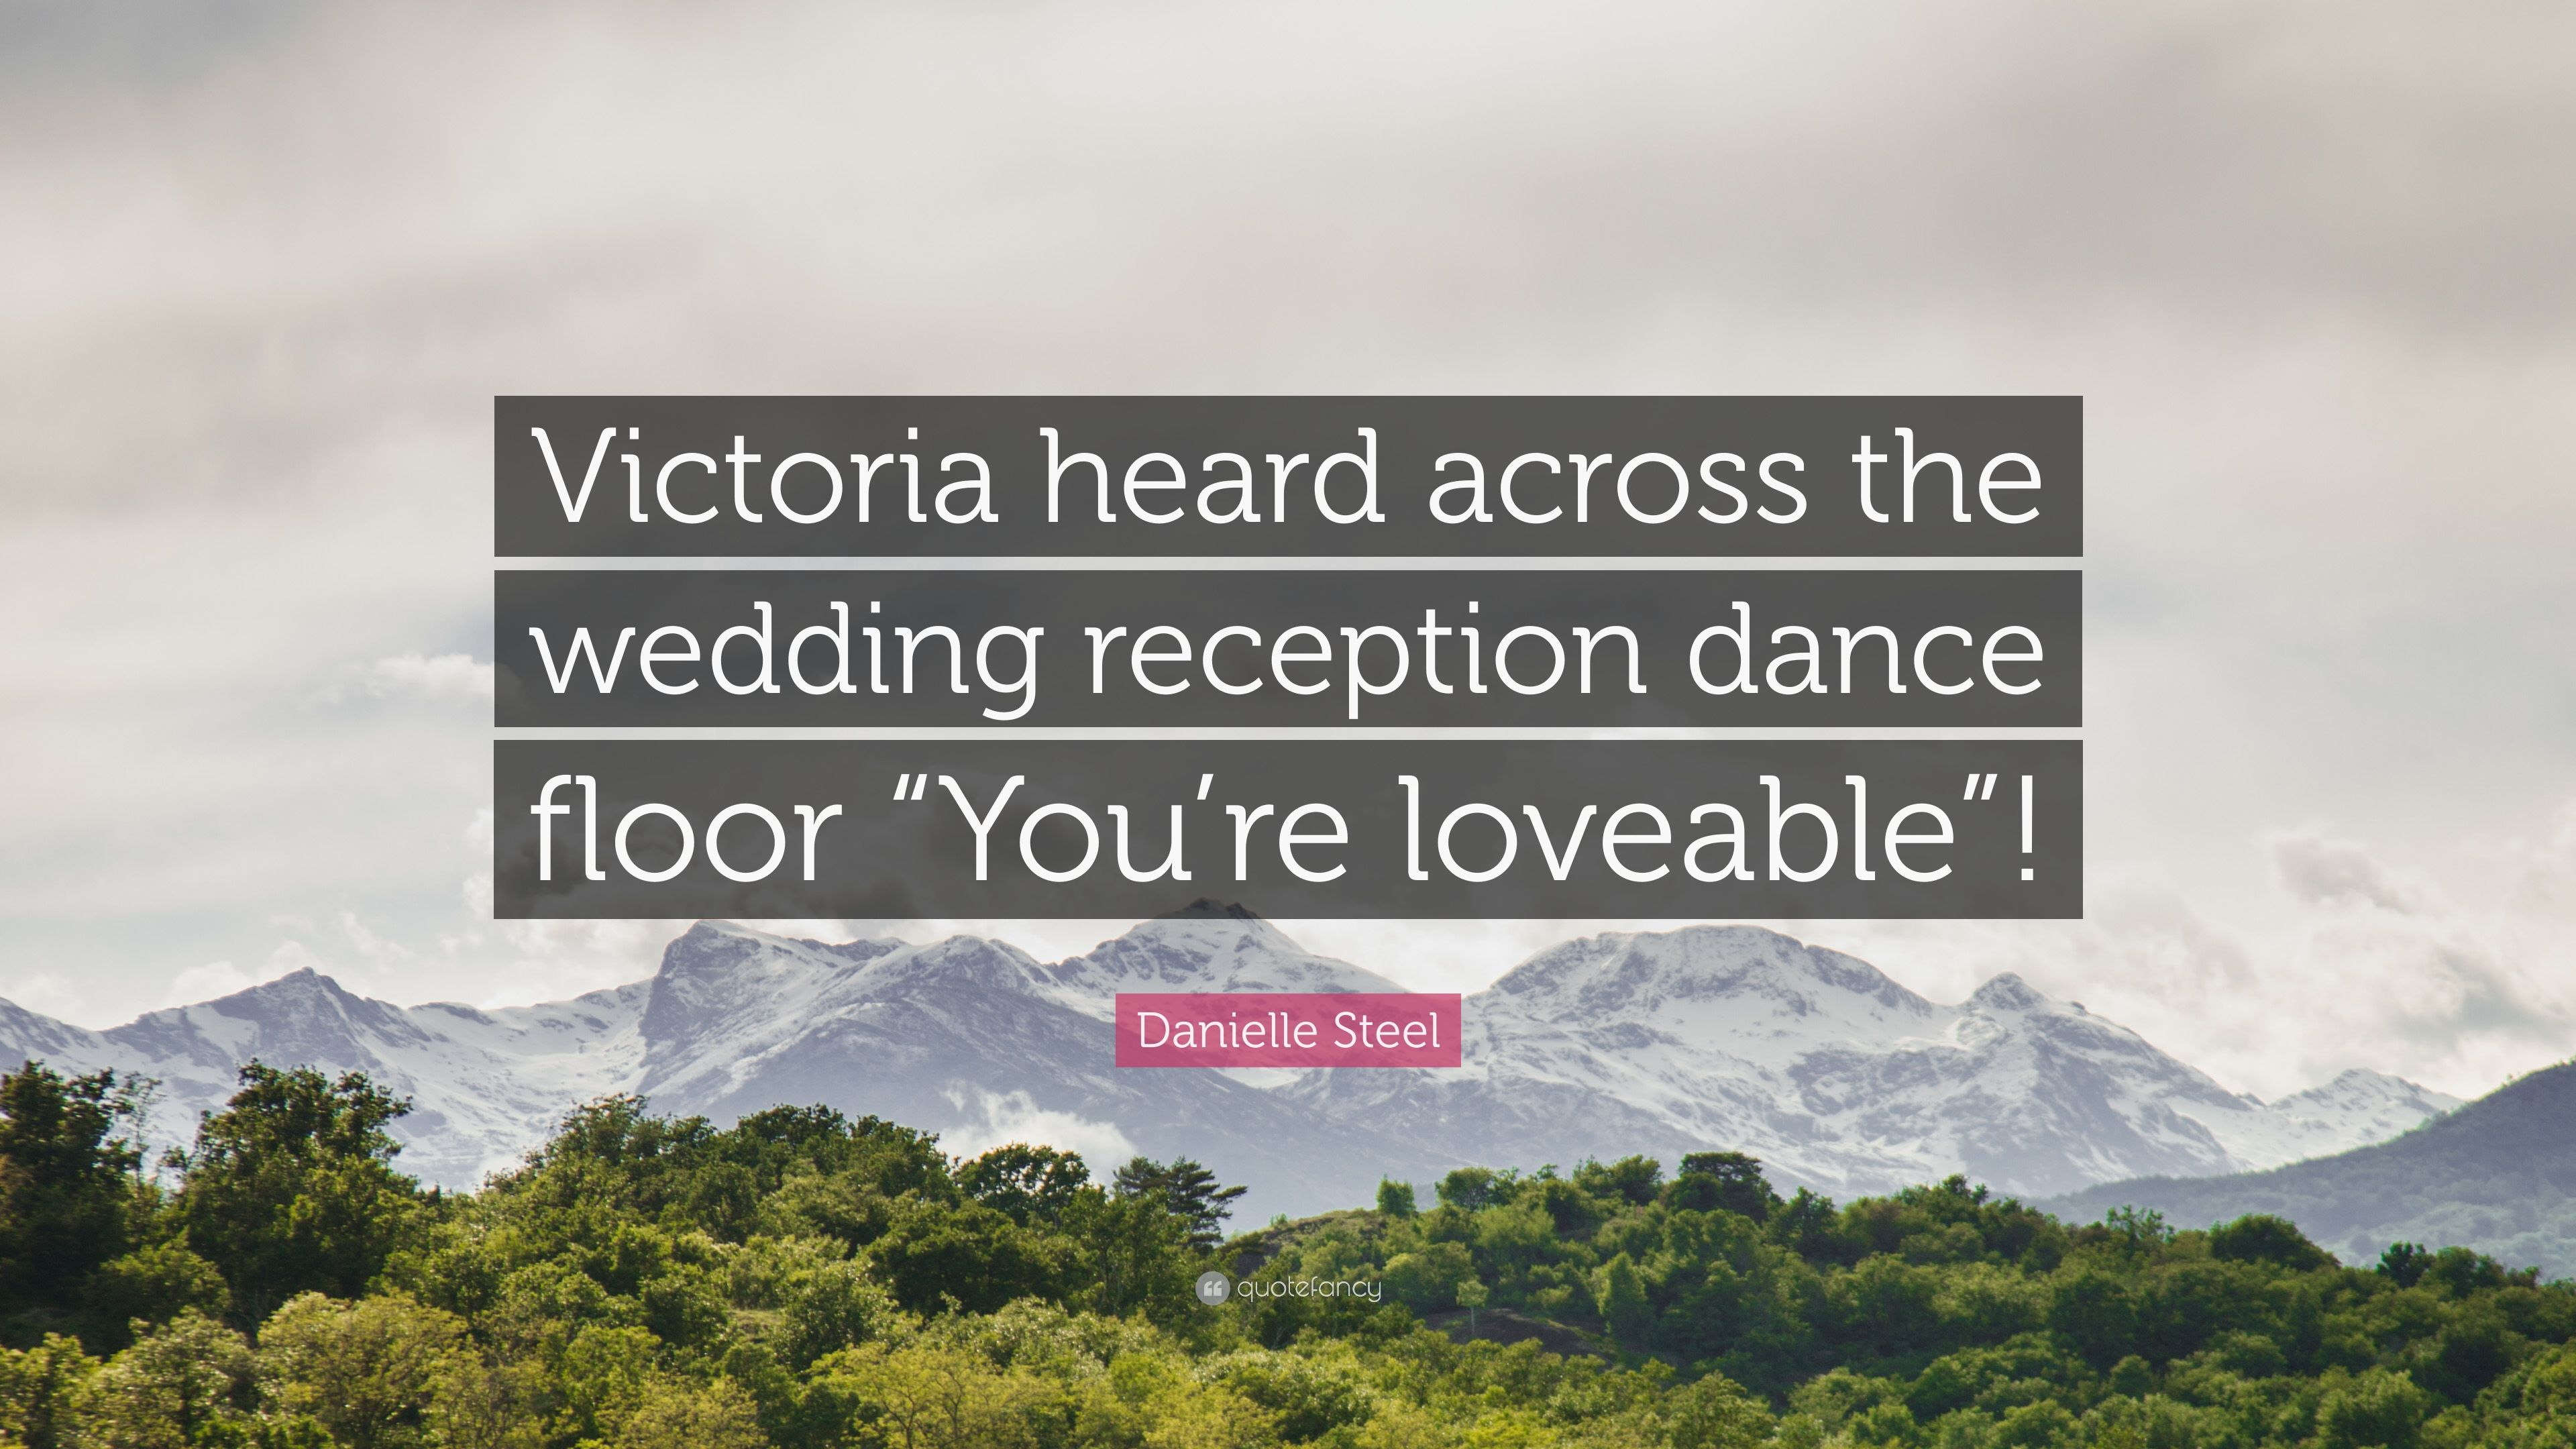 The wedding by danielle steel - Danielle Steel Quote Victoria Heard Across The Wedding Reception Dance Floor You